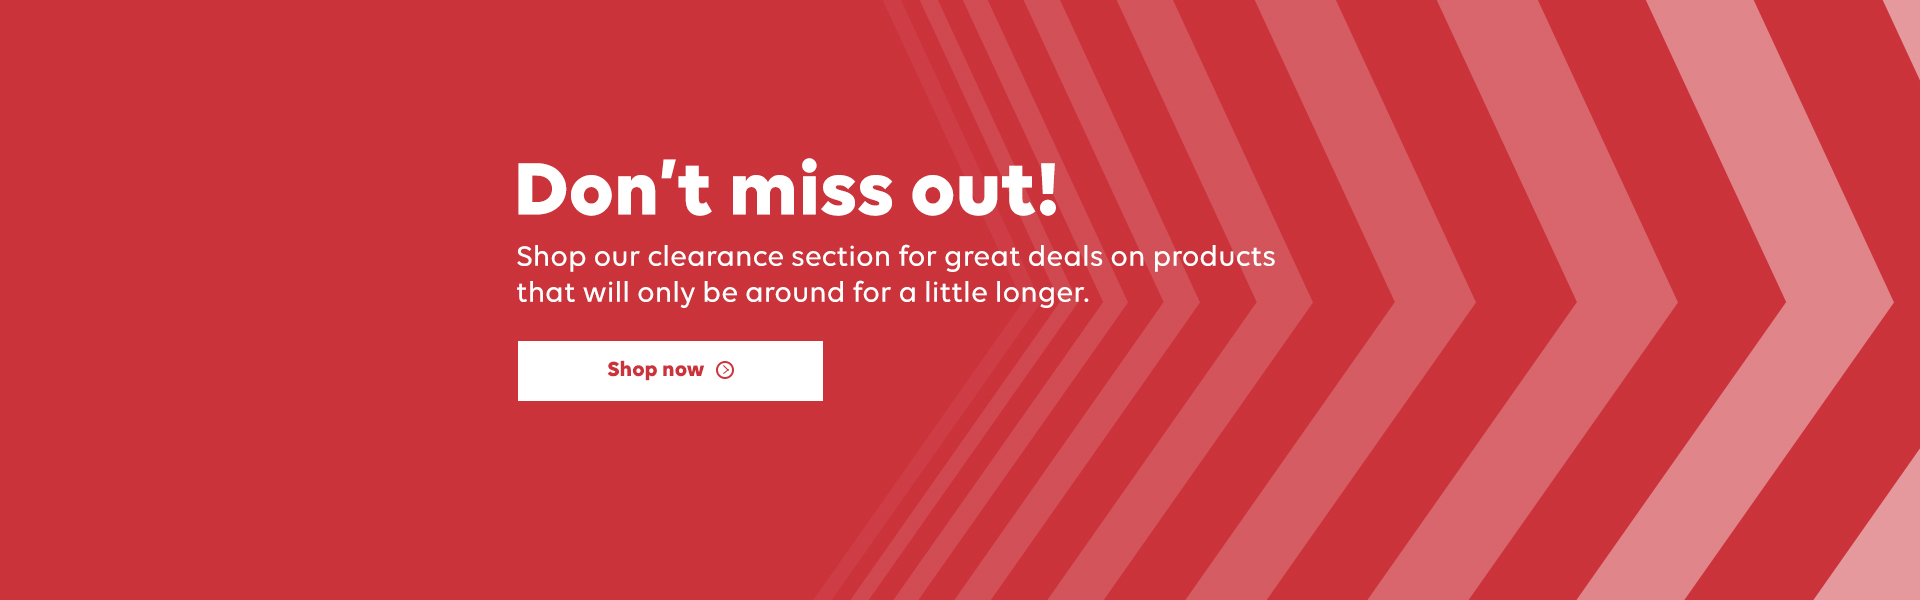 Don't miss out! Shop our clearance section for great deals on products that will only be around for a little longer. Shop now.